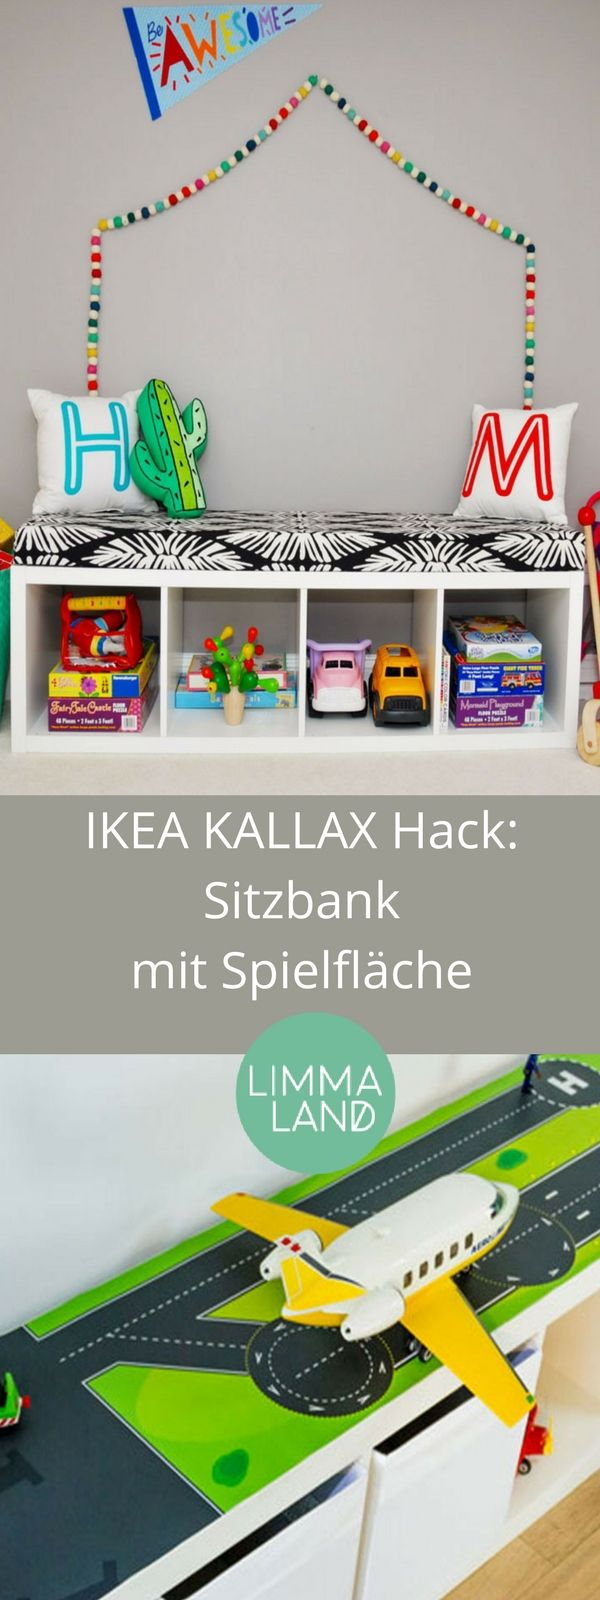 ikea kallax nursery 25 pinterest ikea. Black Bedroom Furniture Sets. Home Design Ideas